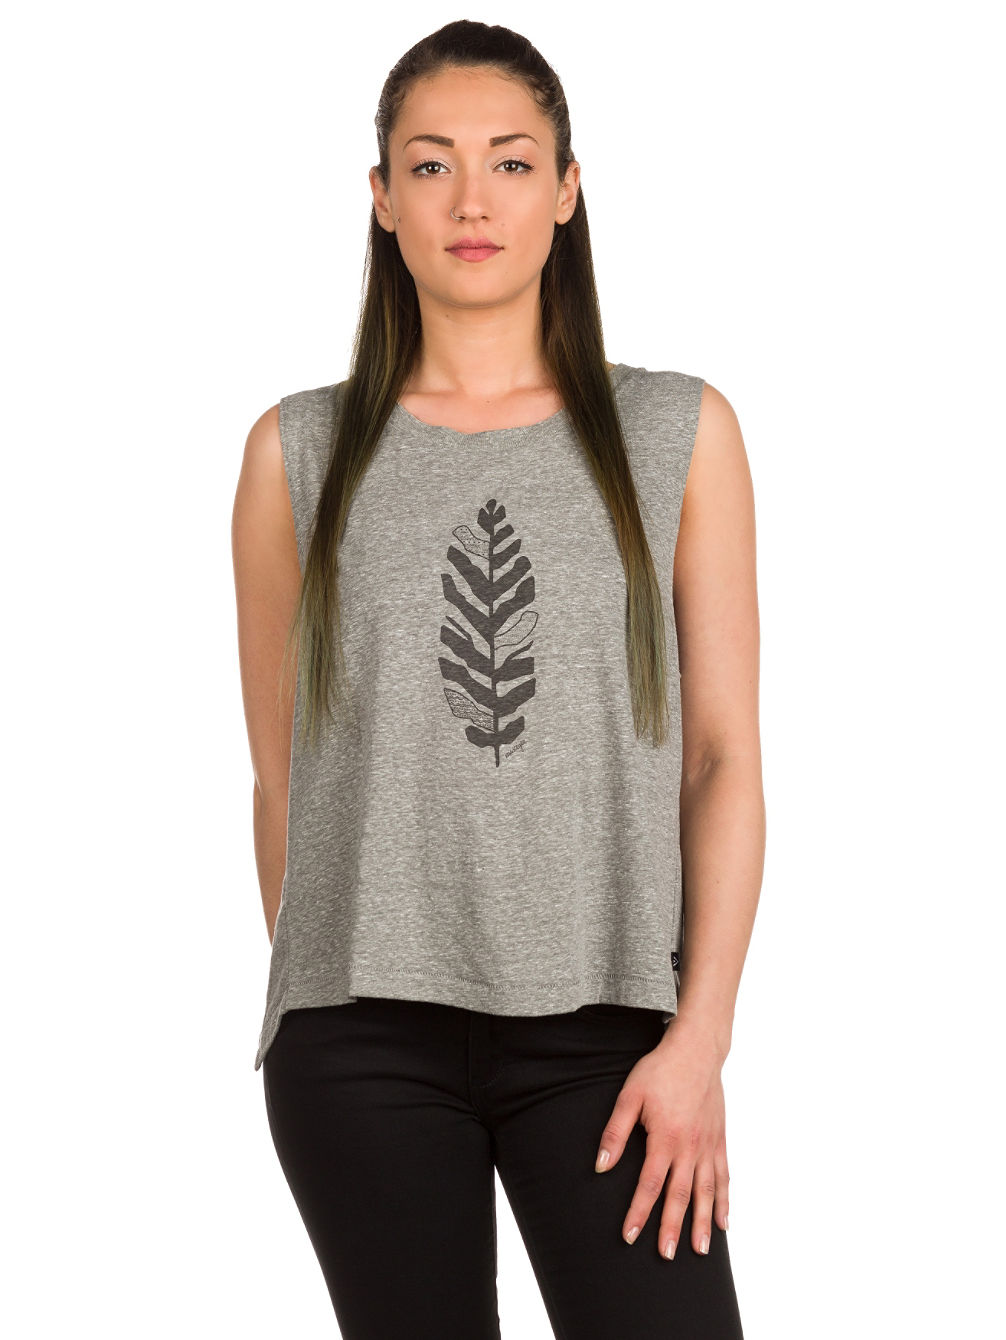 Early Riser Tank Top